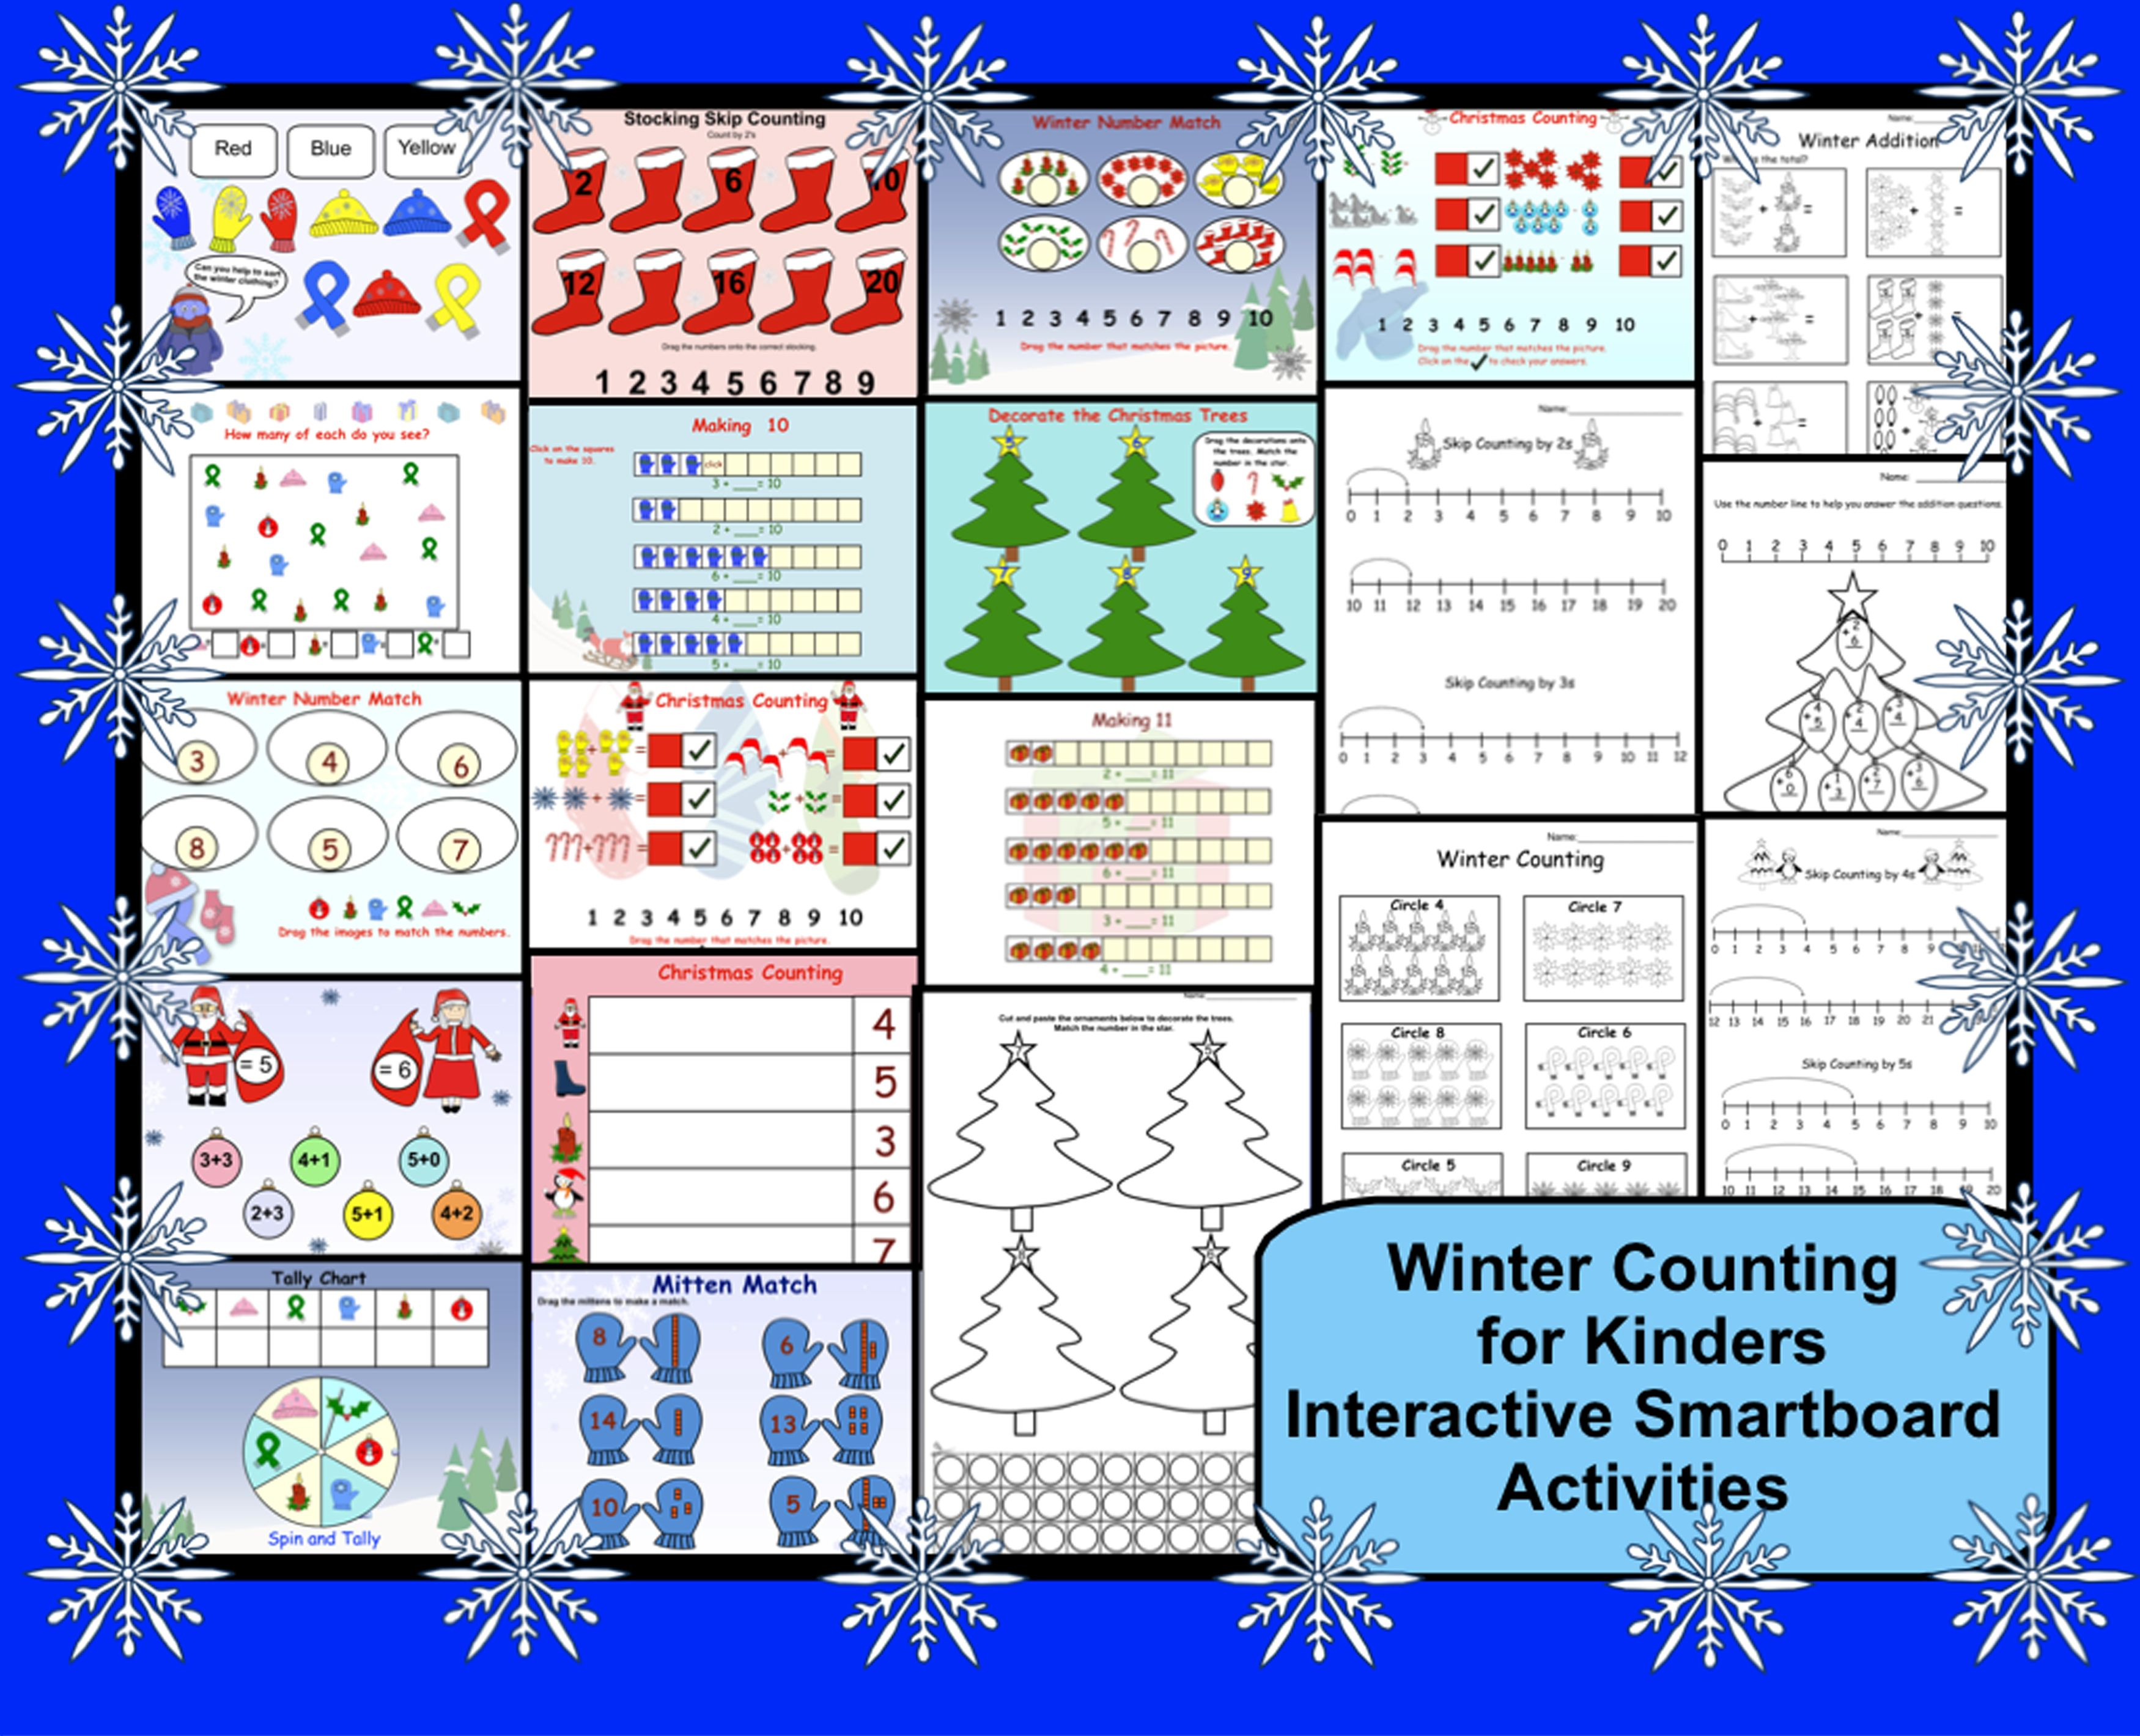 Winter Counting For Kinders Interactive Smartboard